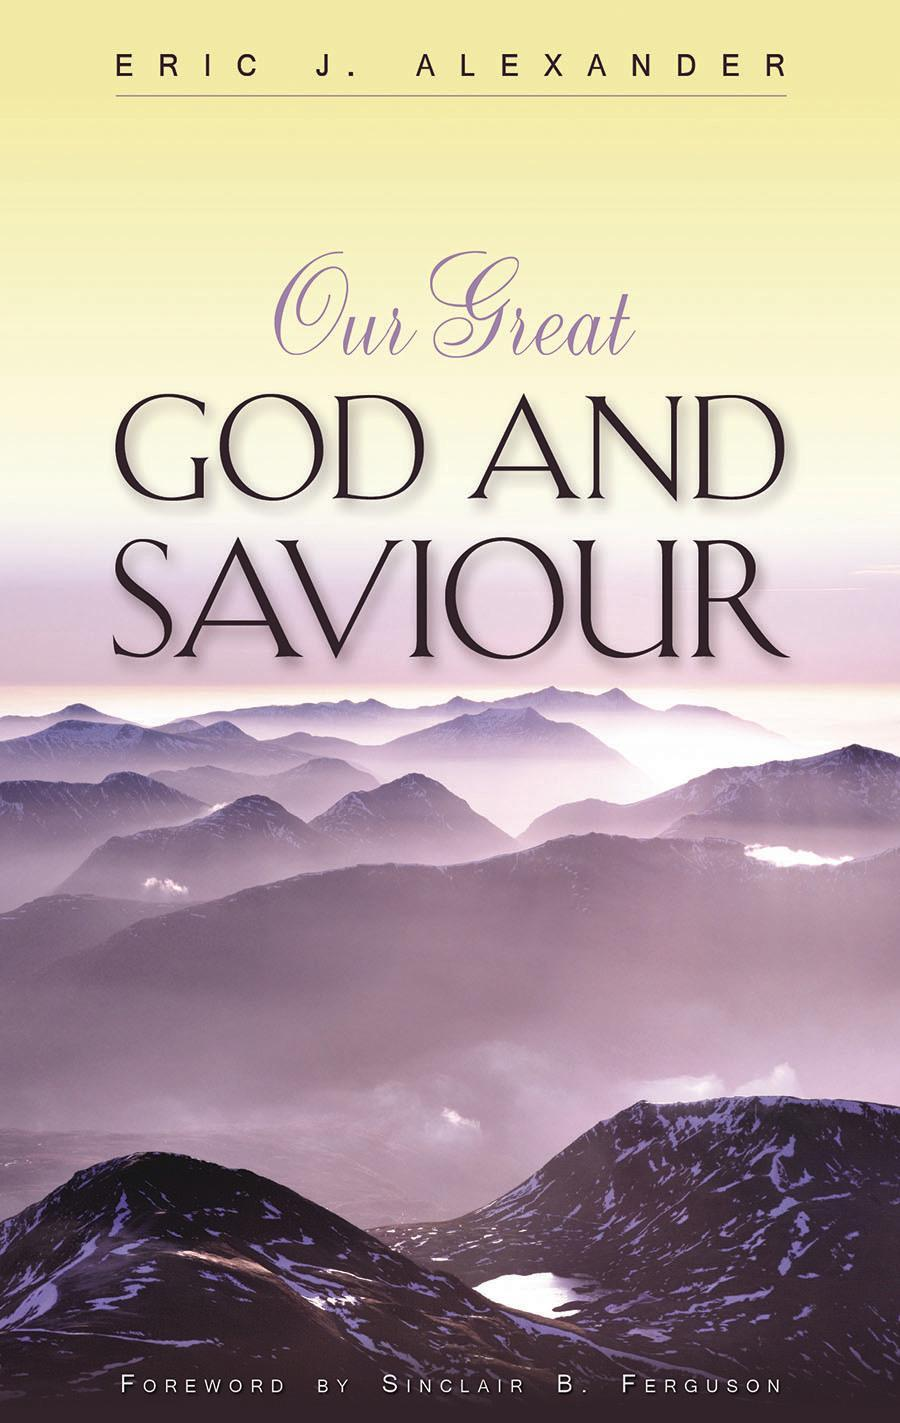 Book Cover for 'Our Great God and Saviour'